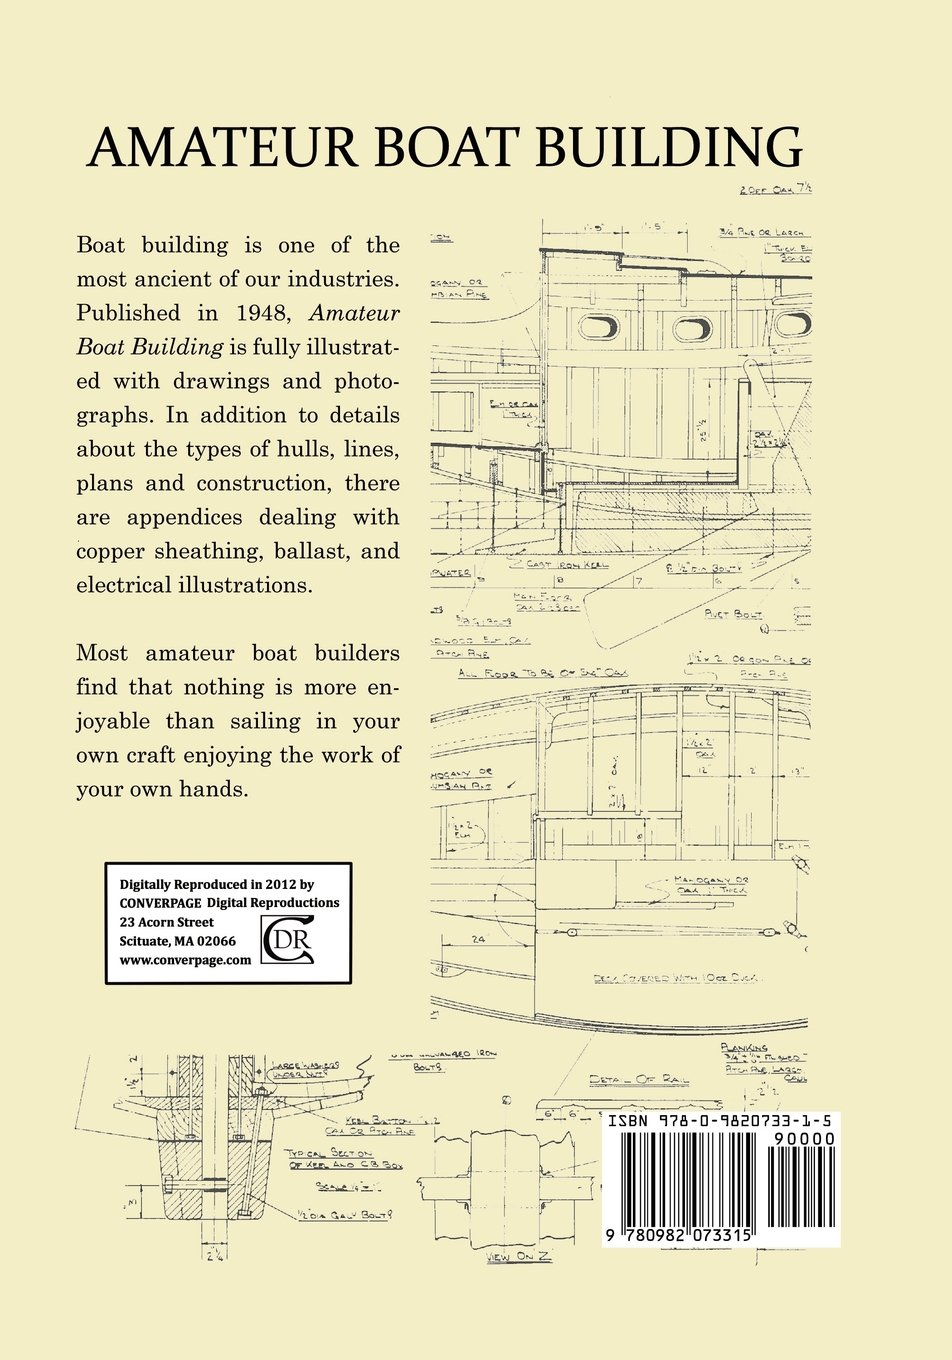 Amateur Boat Building Michael P Verney 9780982073315 Types Of Electrical Plans Books